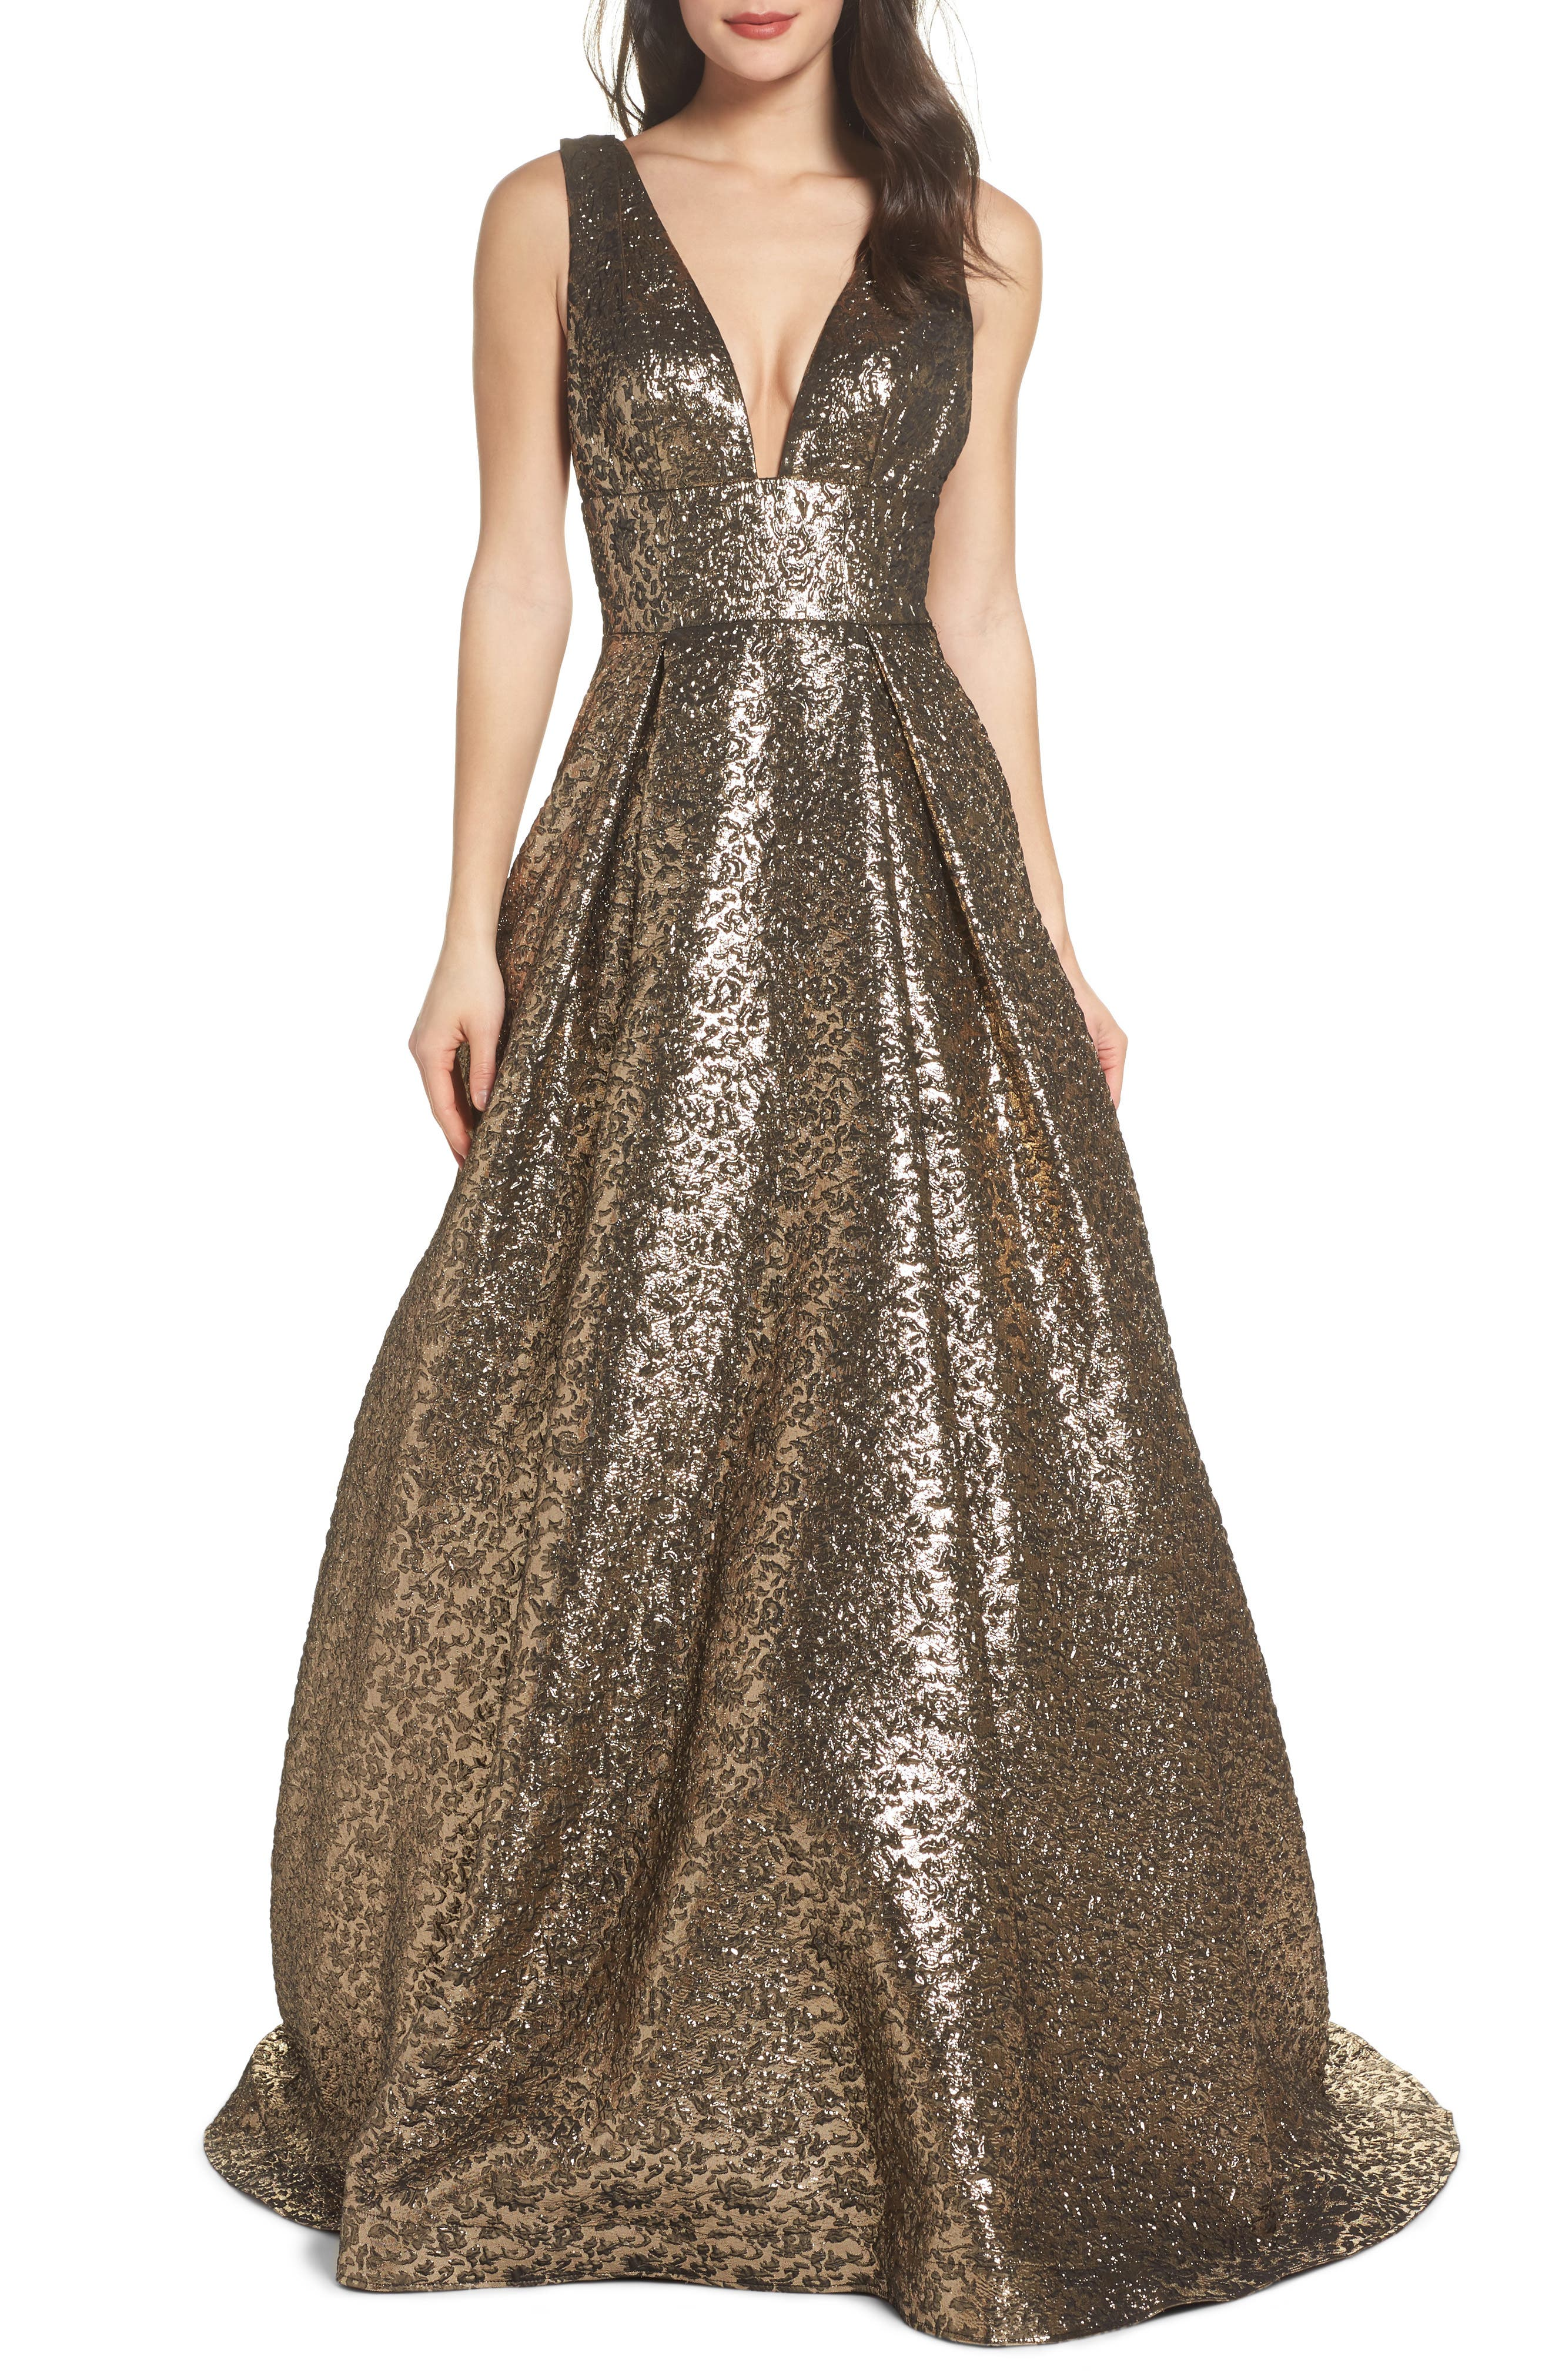 MAC DUGGAL, Metallic Jacquard Ballgown, Main thumbnail 1, color, ANTIQUE GOLD